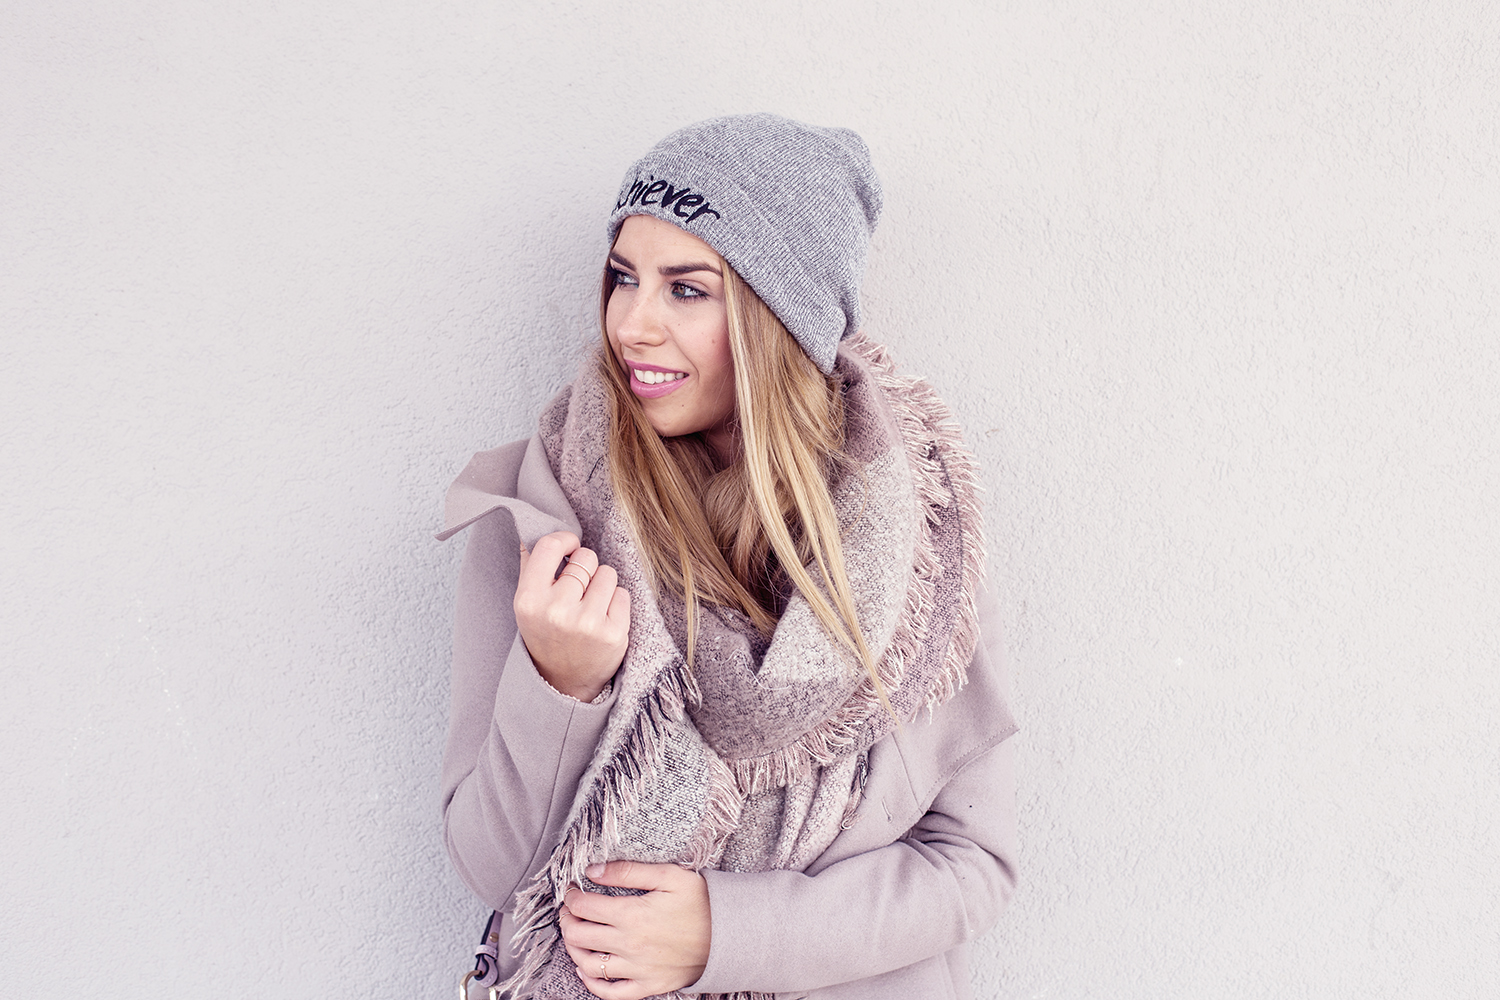 All_Saints_Coat_Forever21_Scarf_Rad_Co_Winterlook_Outfit_Luisa_Lion